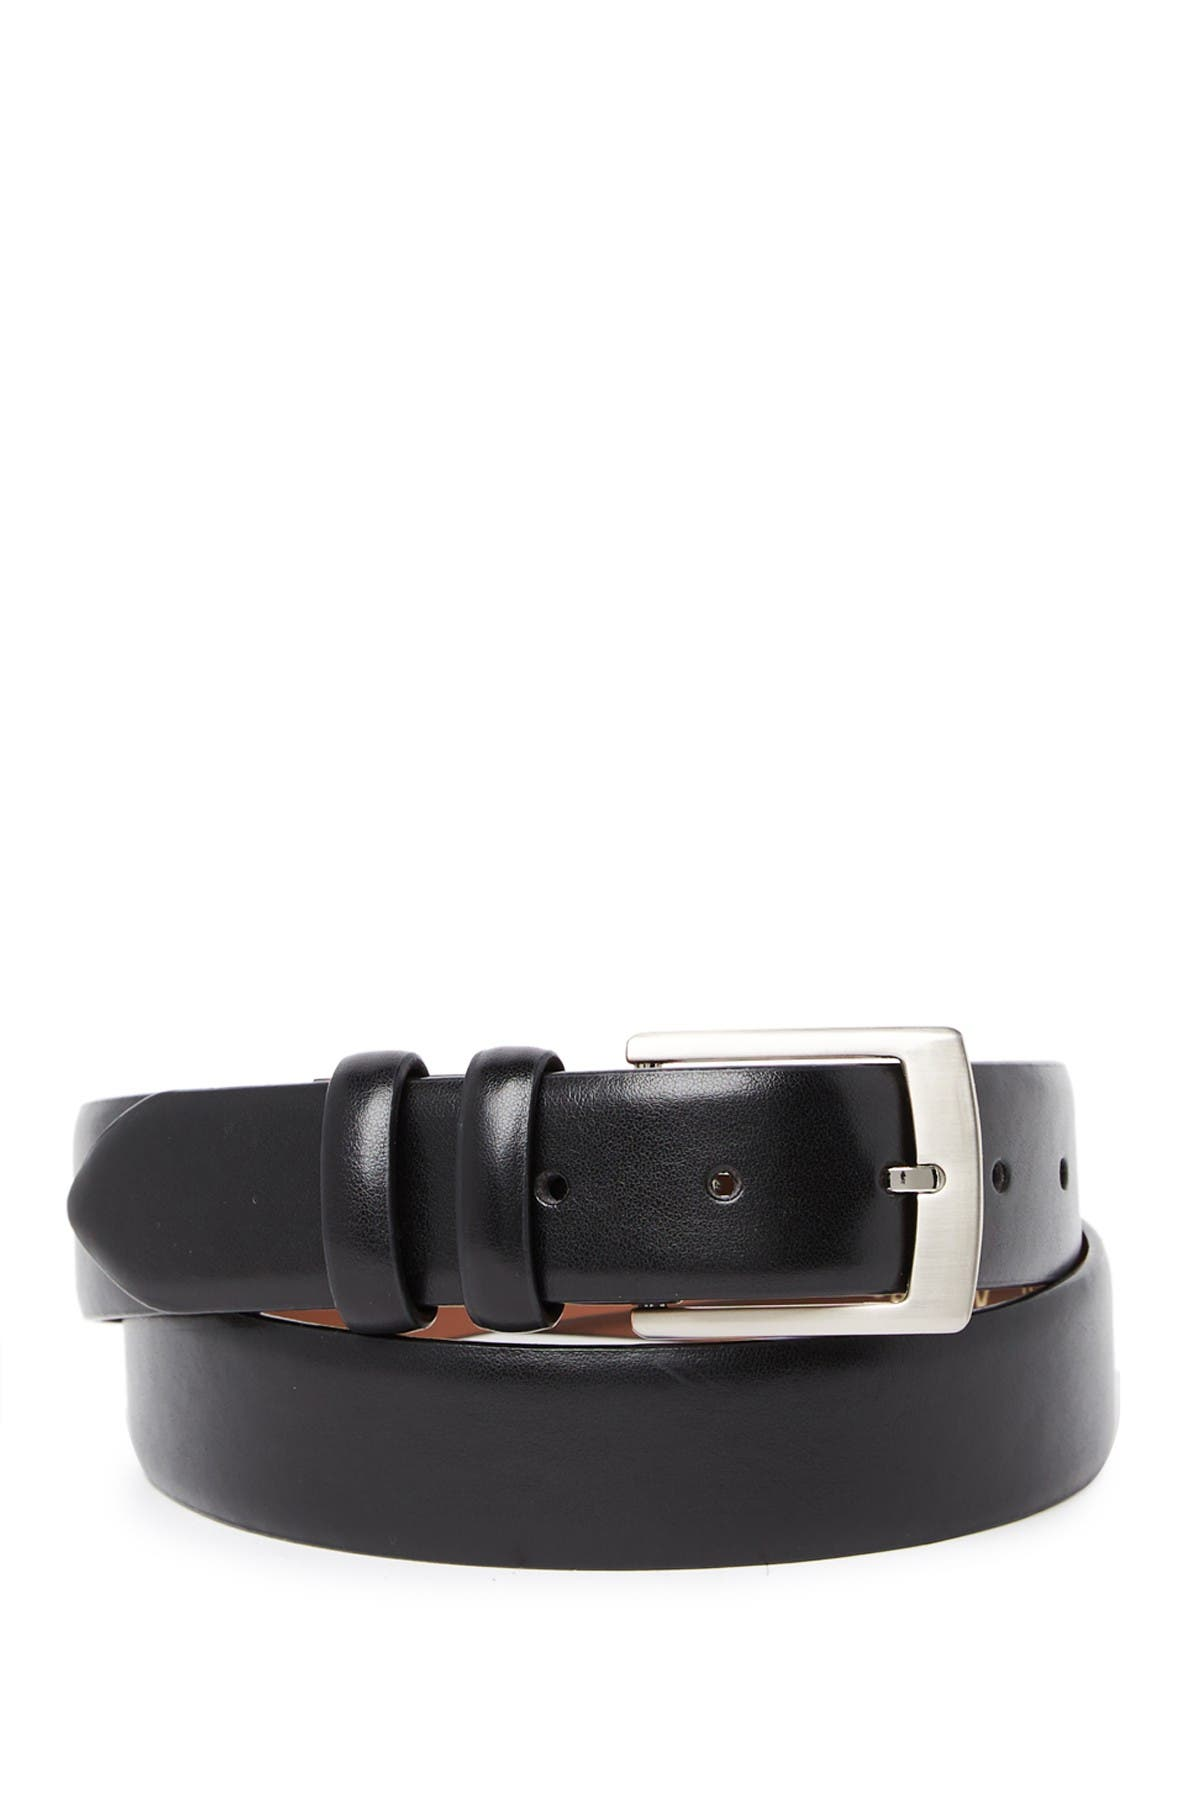 Image of BOSCA Leather Belt